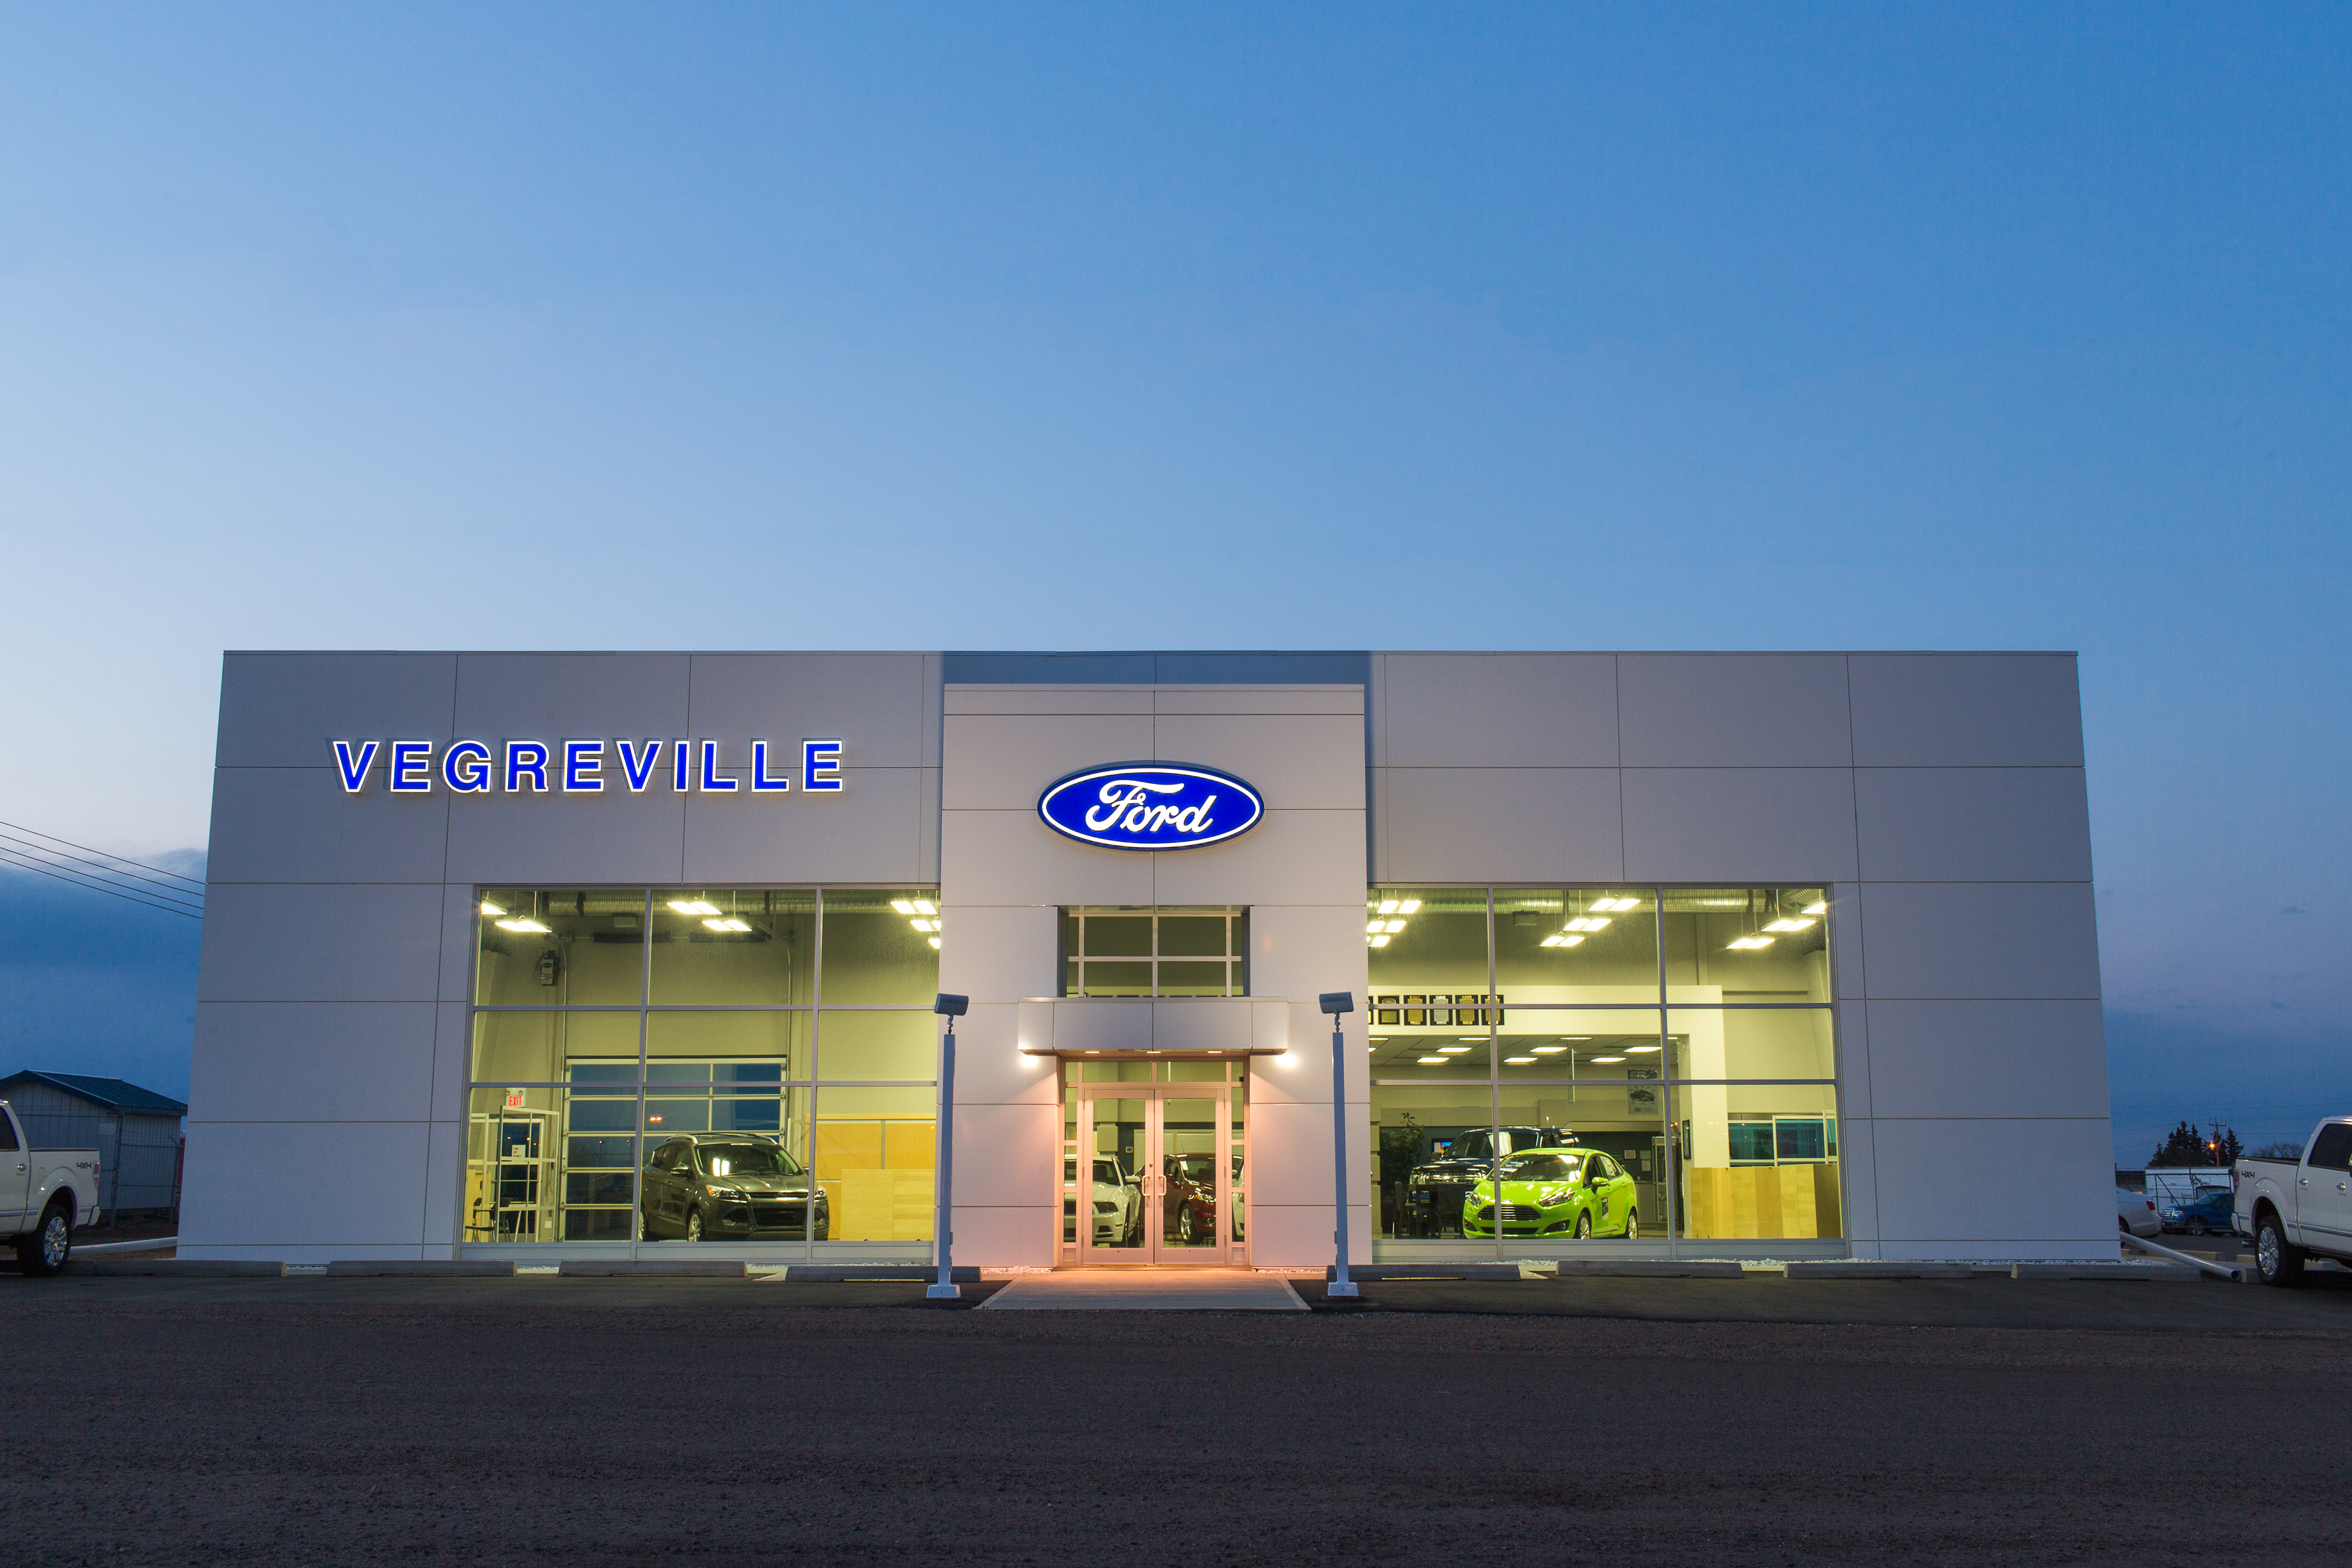 Recent Work: Vegreville Ford Dealership Addition